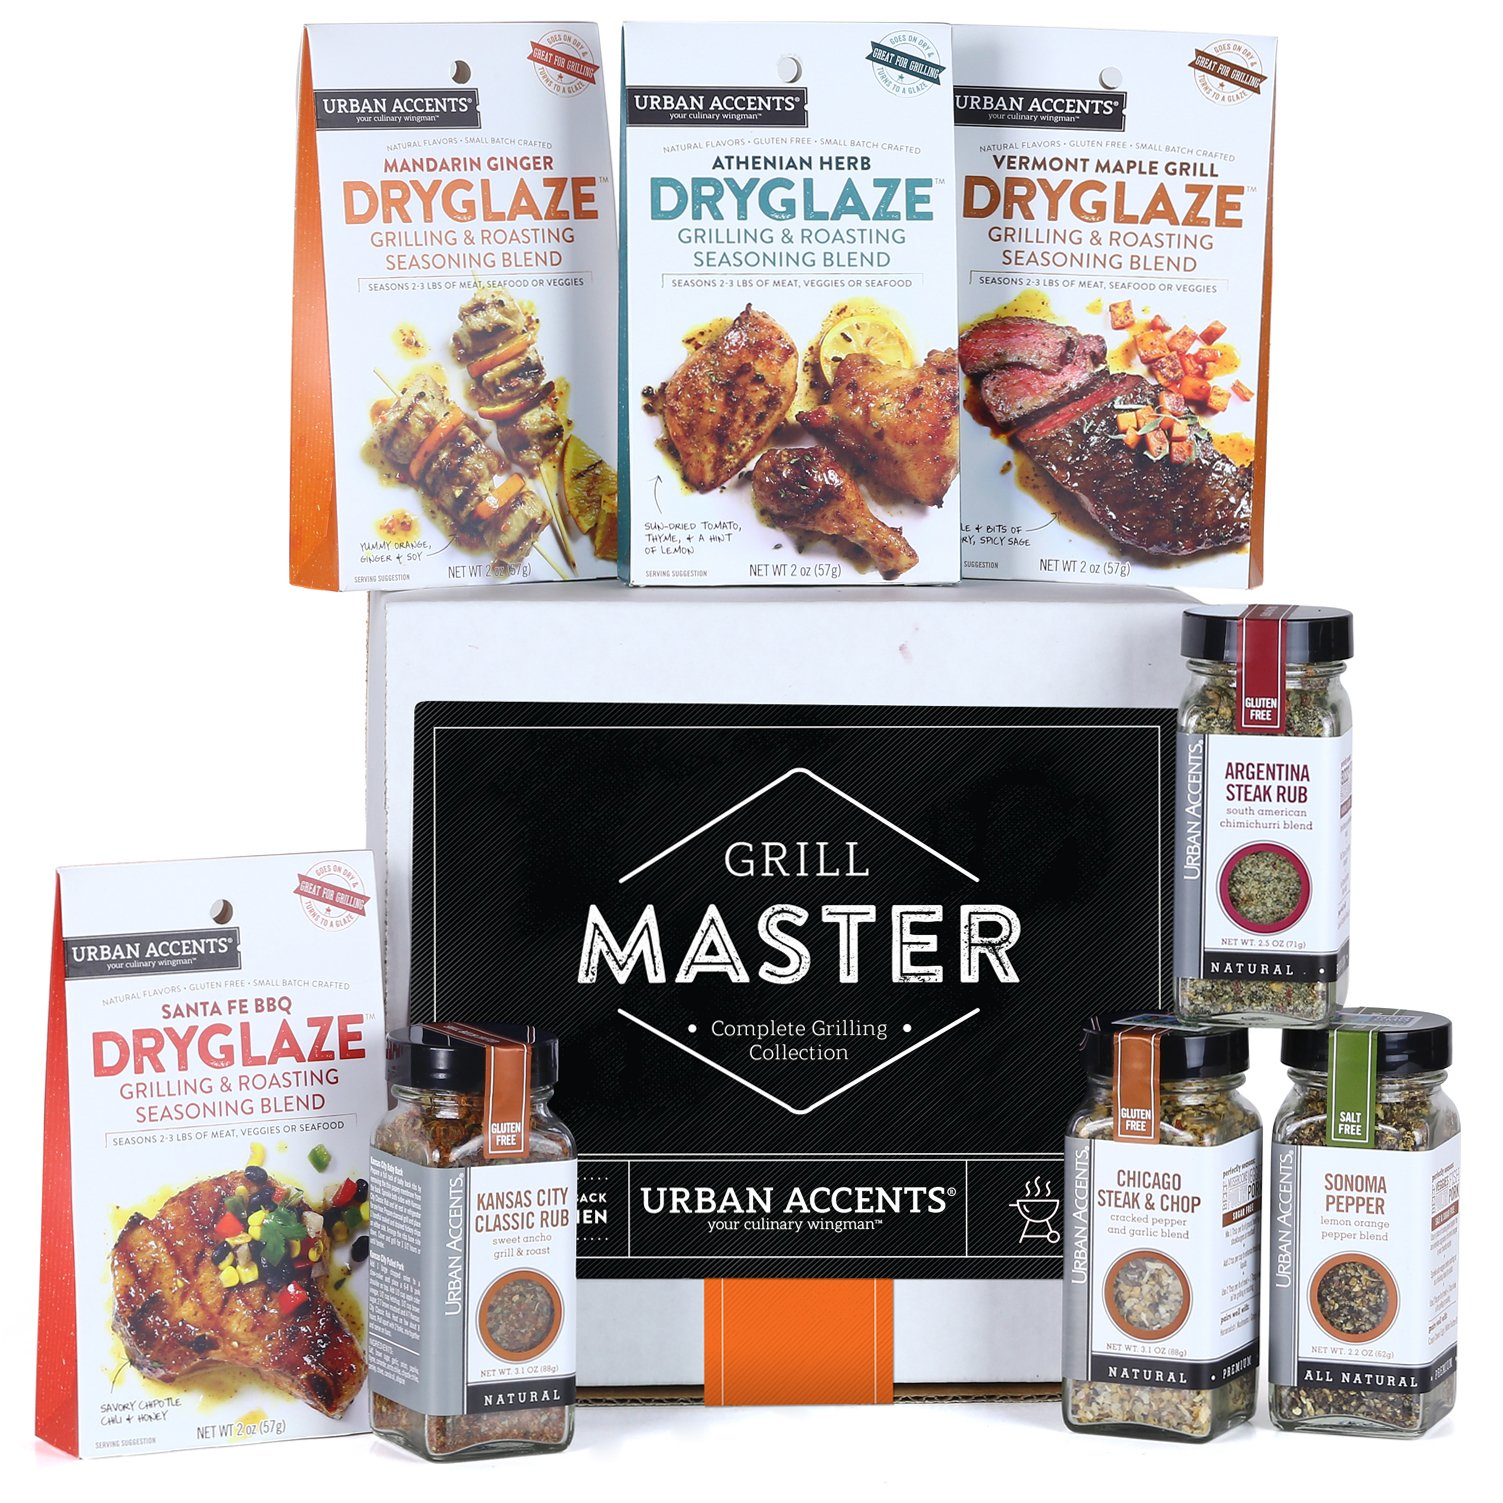 Urban Accents GRILL MASTER, The Complete Gourmet Grilling Collection (Set of 8) - A Dryglaze, Grilling Spices and Rubs Gift Set. Perfect for Weddings, Housewarmings or Any Occasion.